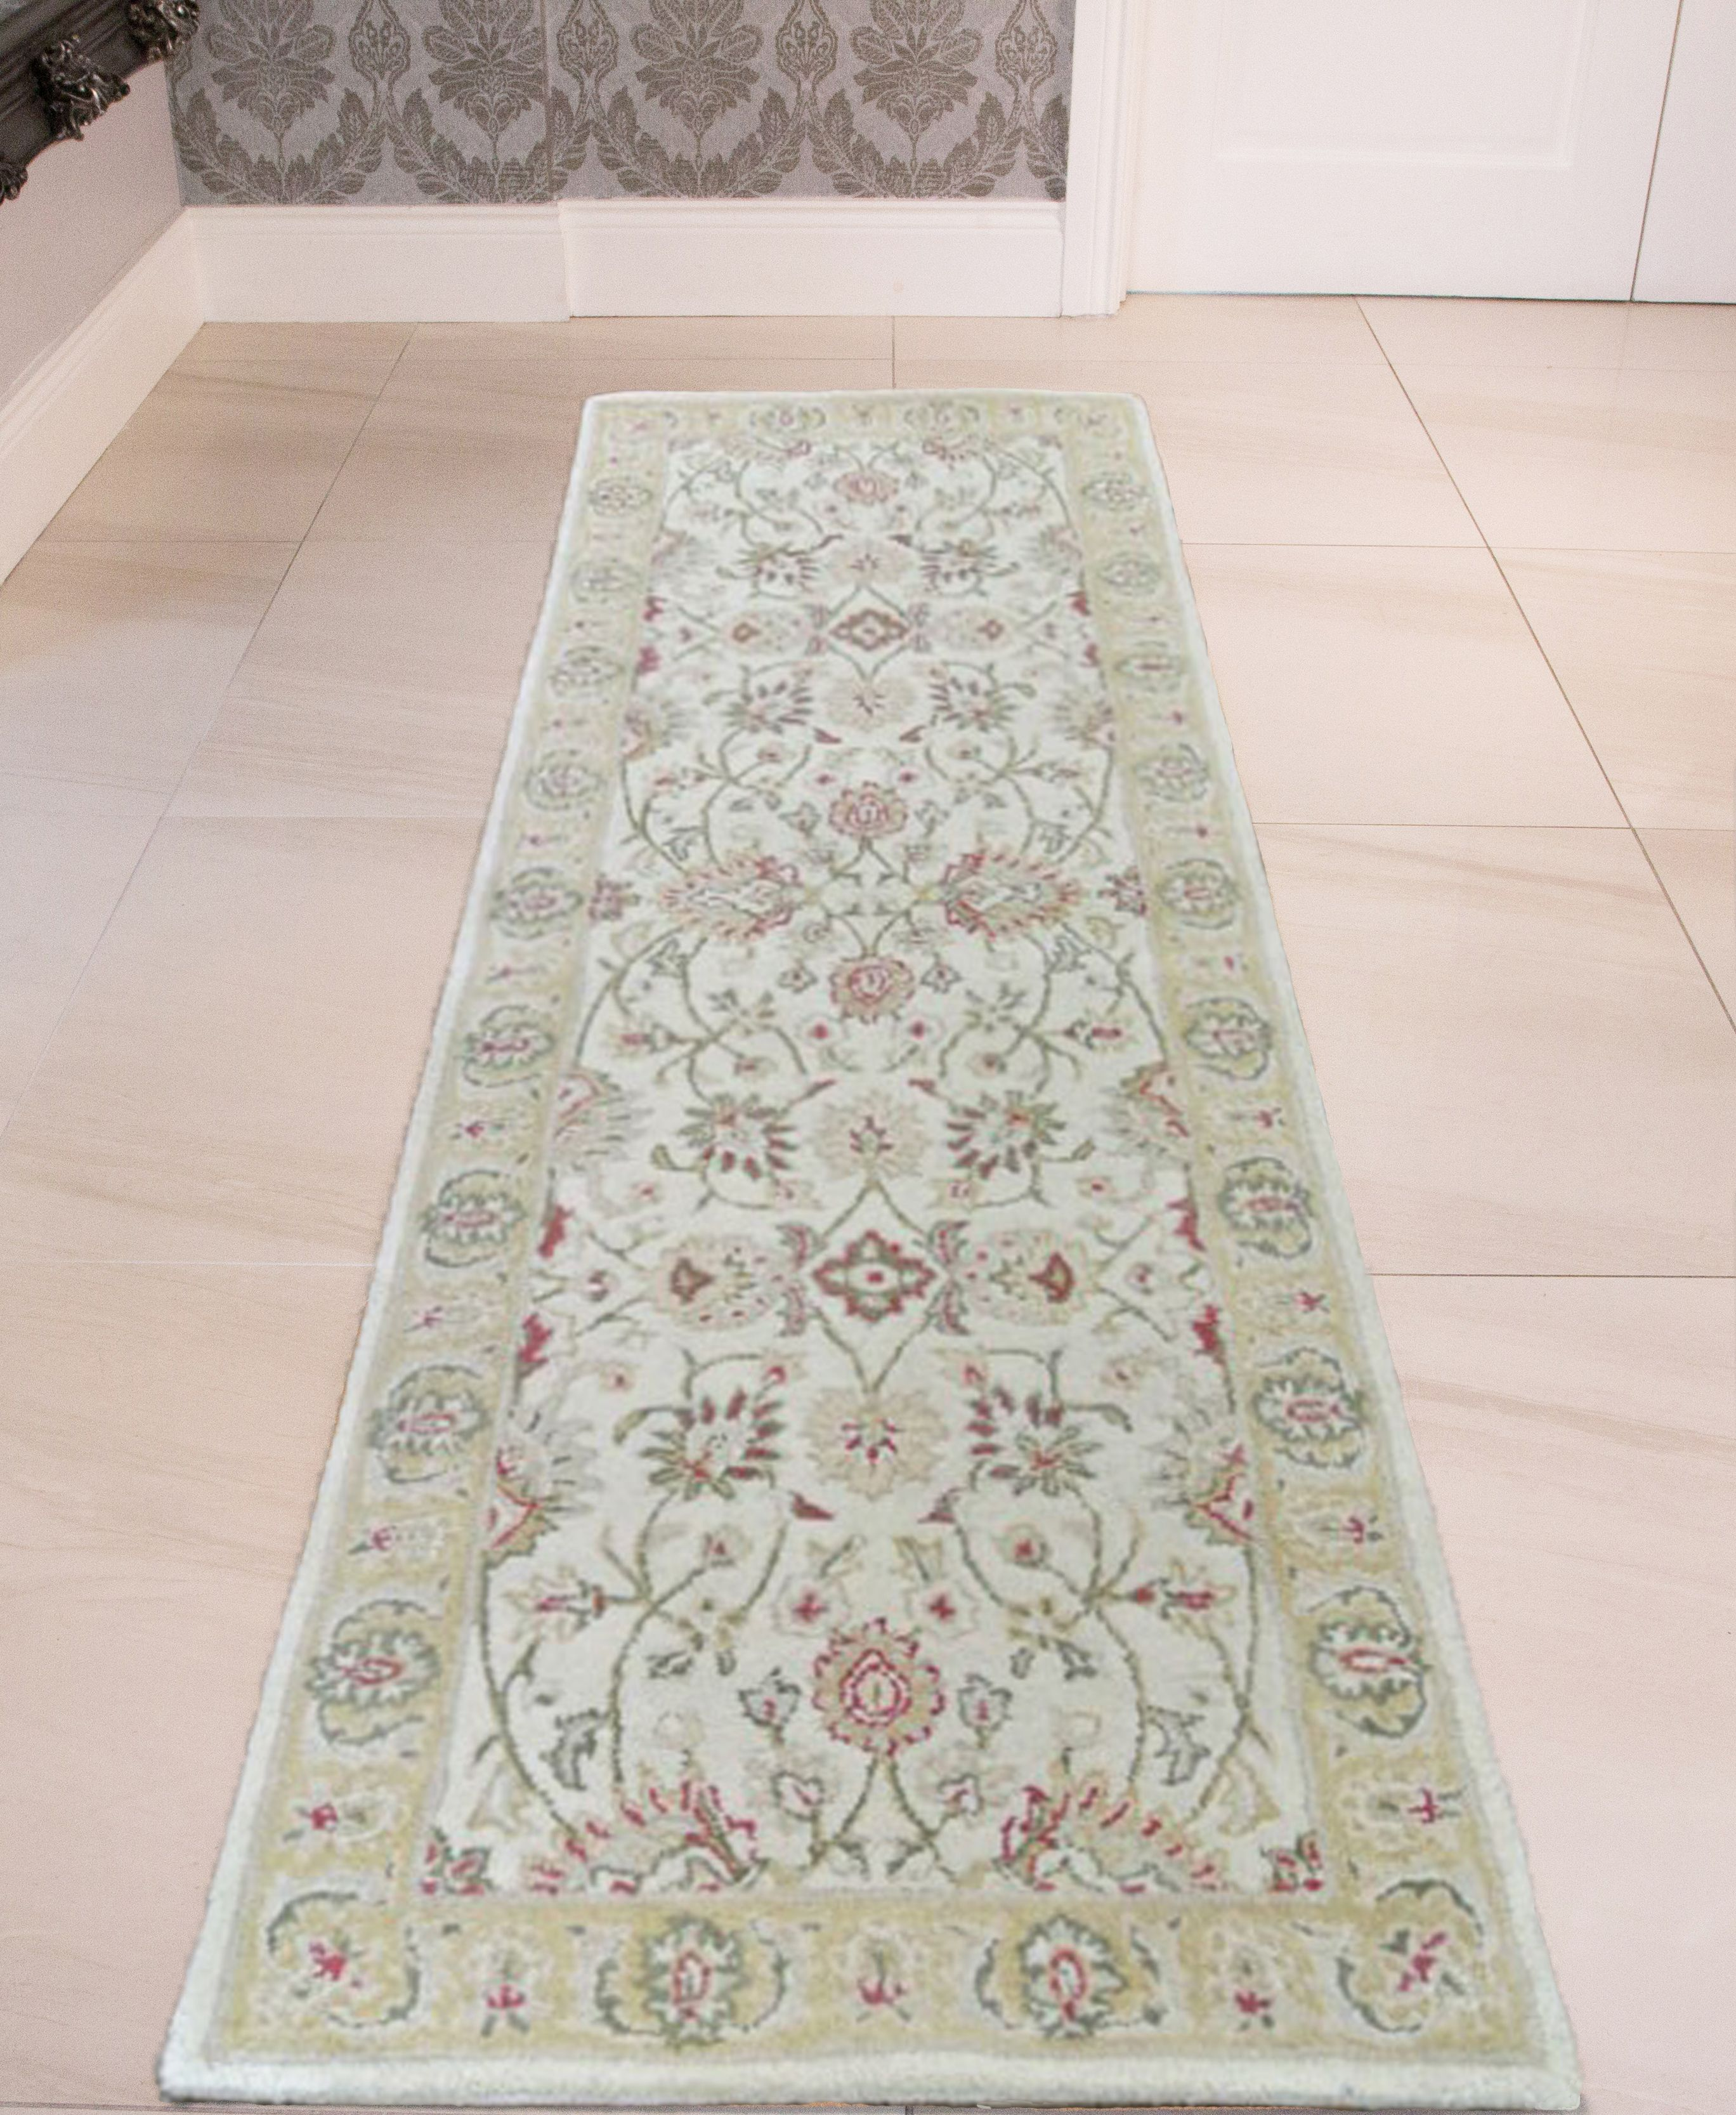 Accra Beige Persian Style Traditional Wool Runner Rug On Sale In The UK  Along With Best Prices On Many Other Flooring Goods.